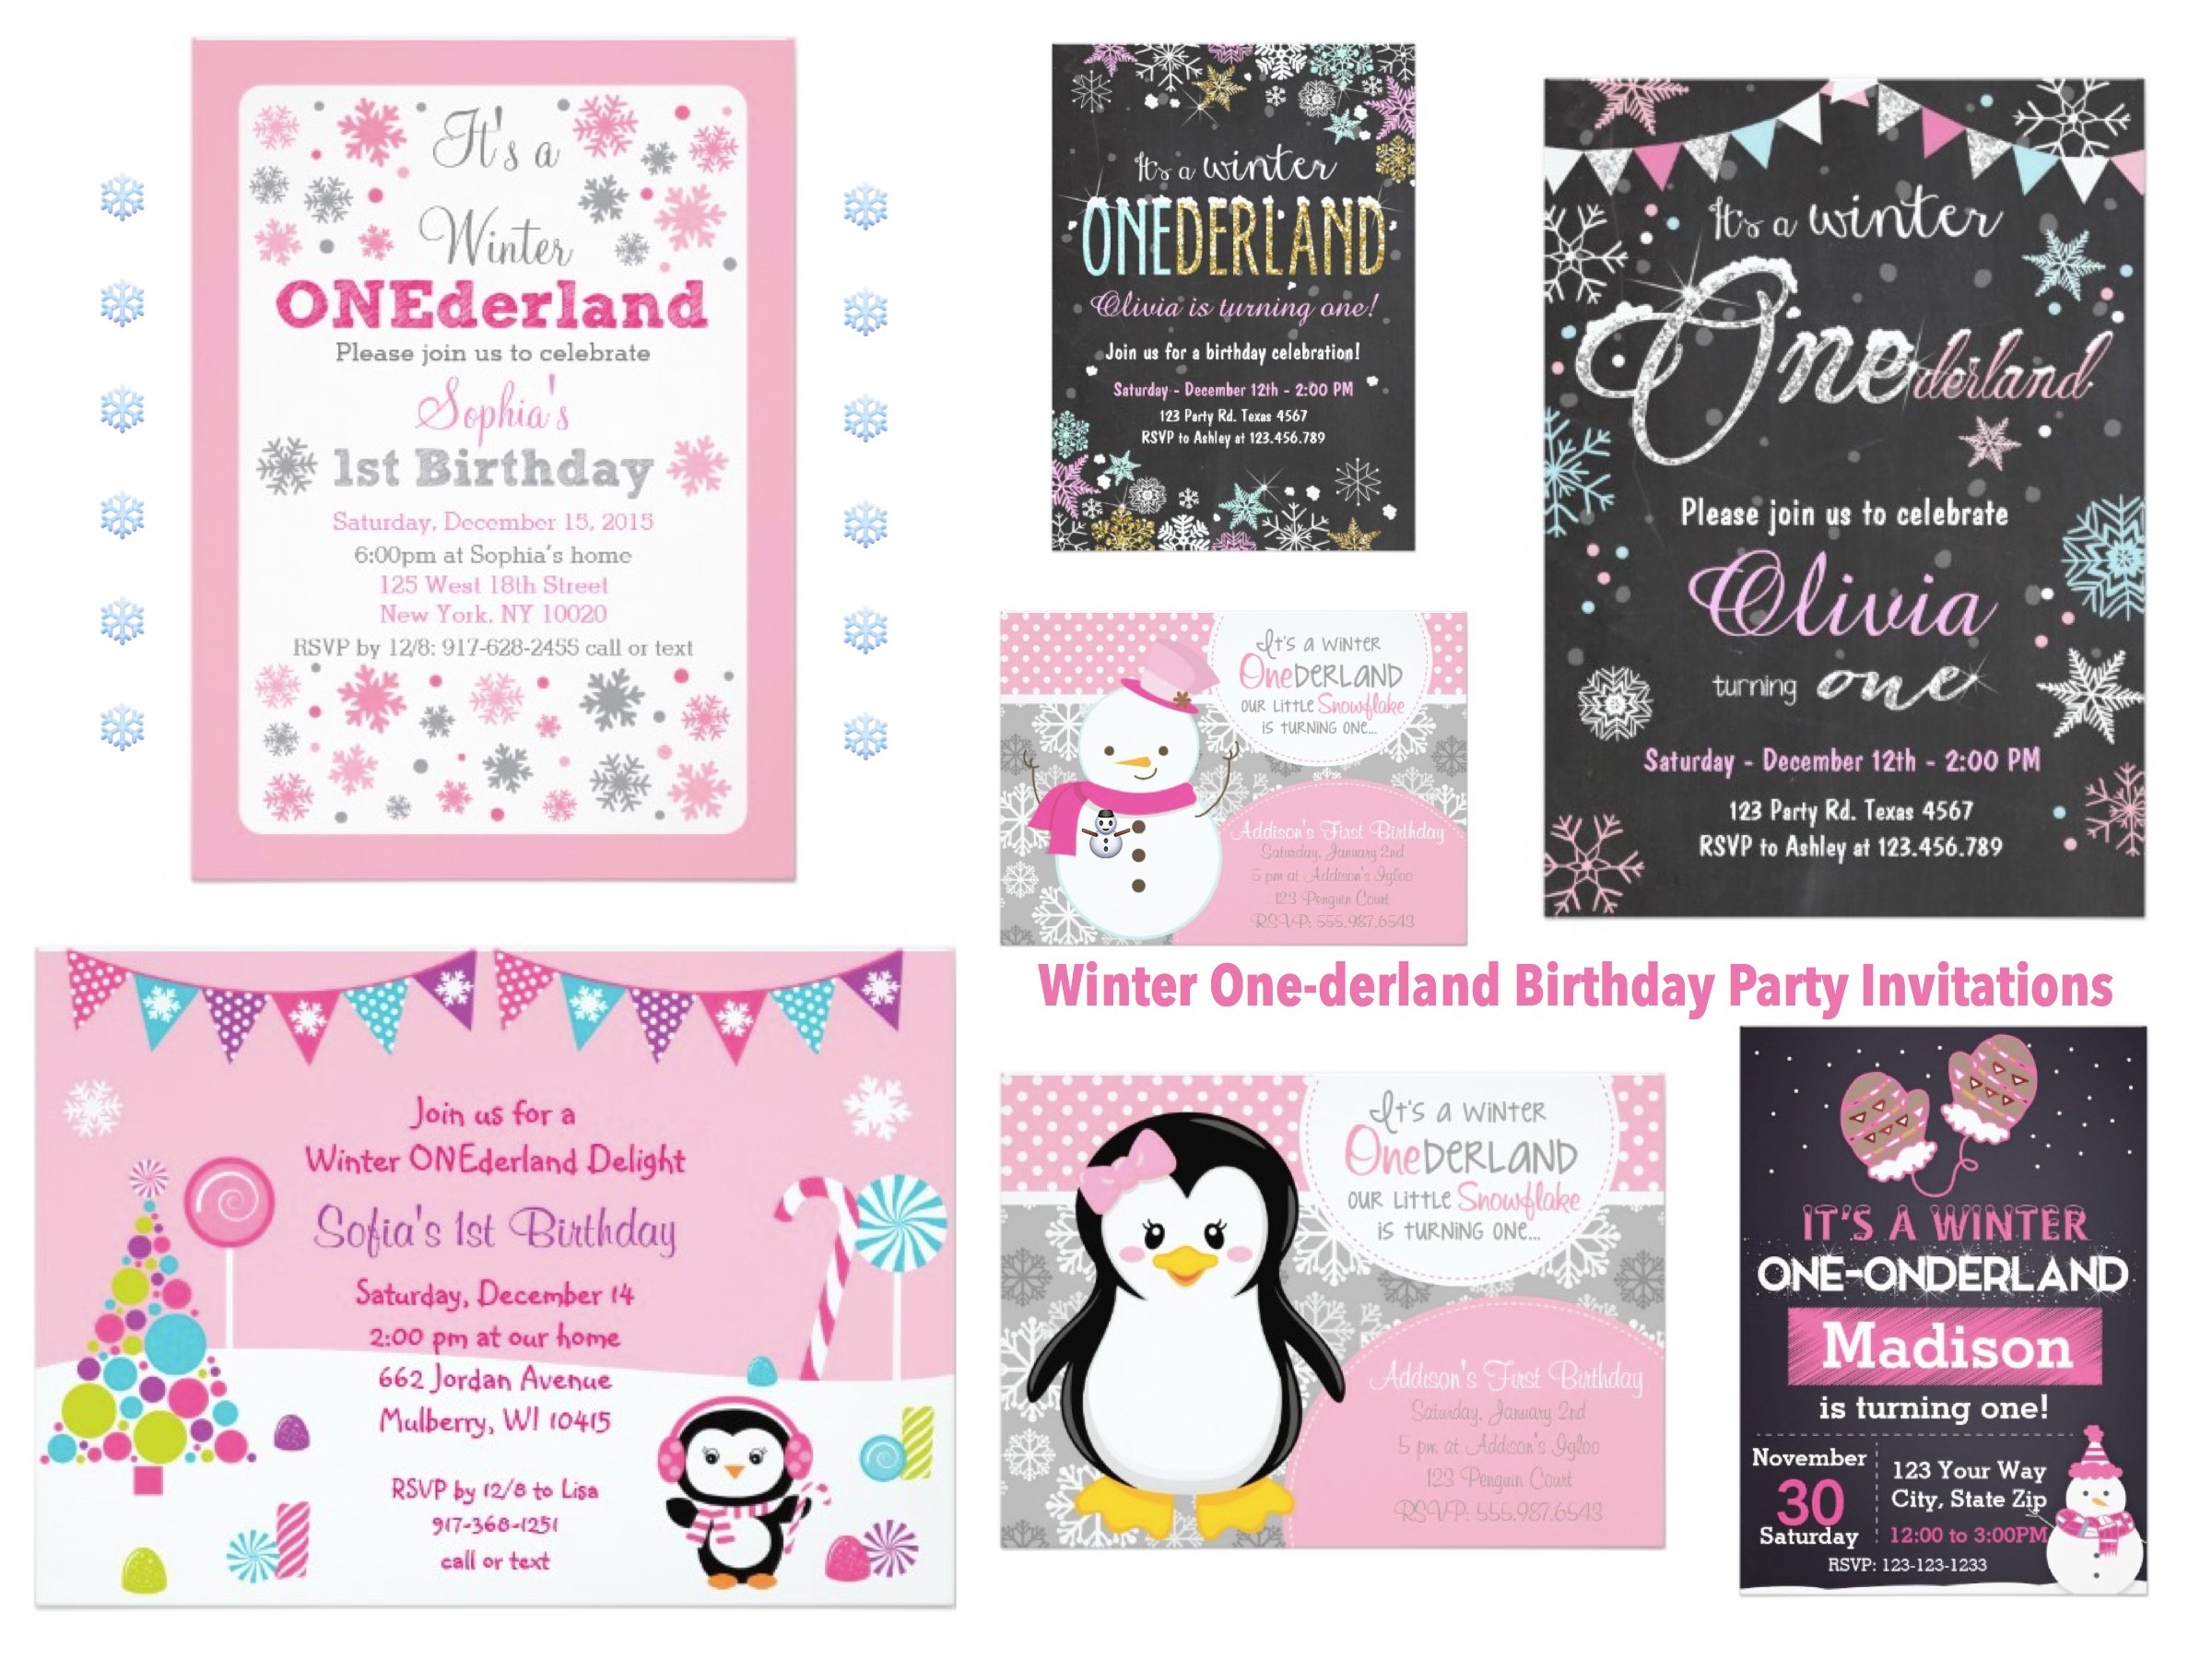 Winter One-derland Birthday Party Invitations